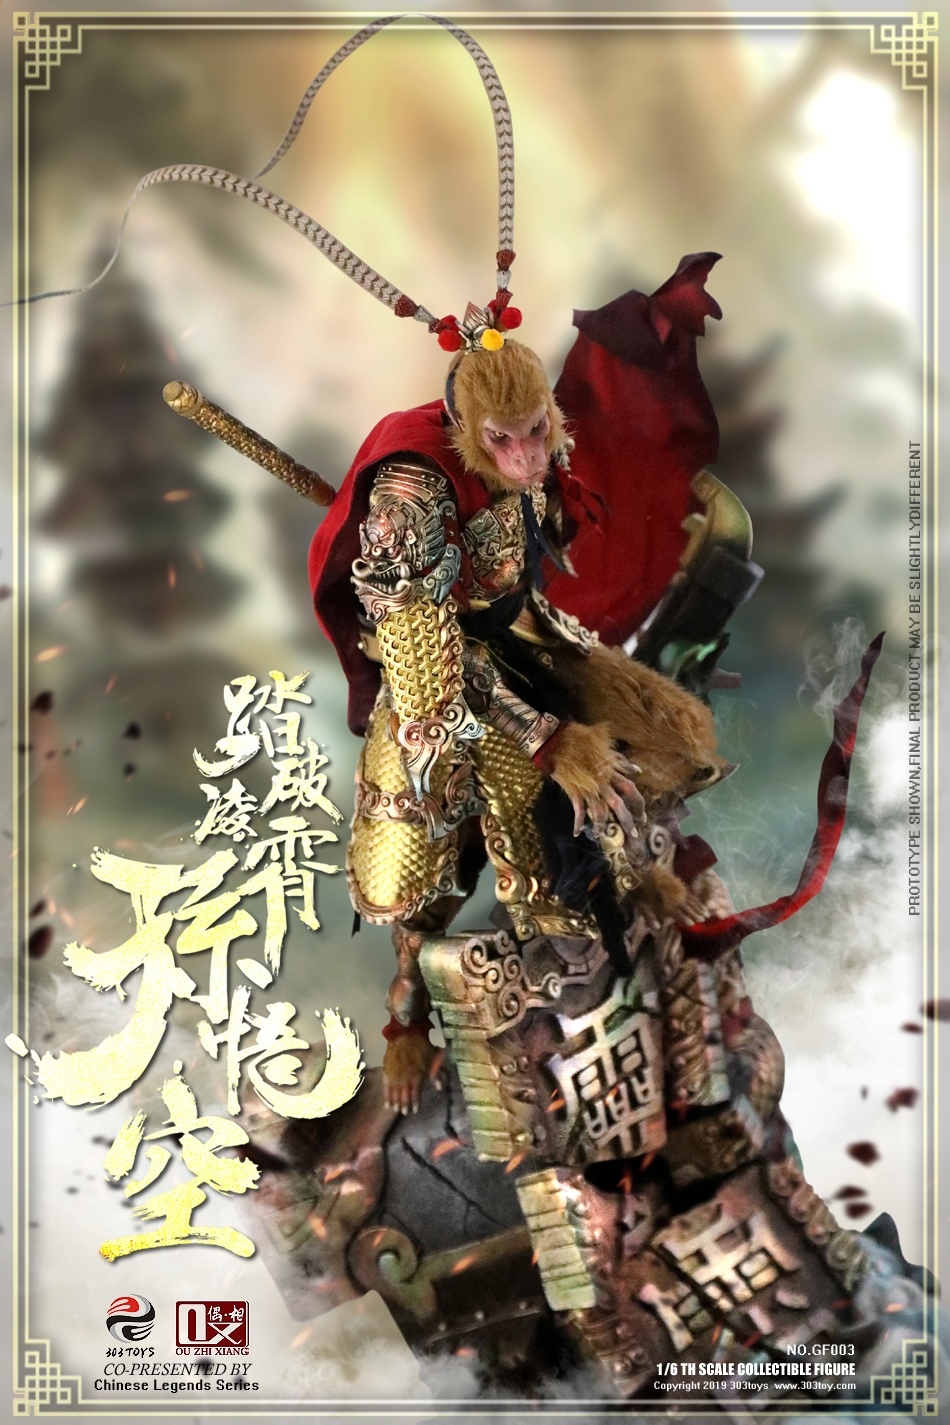 EveningPhase - NEW PRODUCT: 303TOYS x Evening phase: 1/6 National Wind Legend Series - Sun Wukong Monkey King Apocalypse & Dasheng Qitian & Stepping 18102510